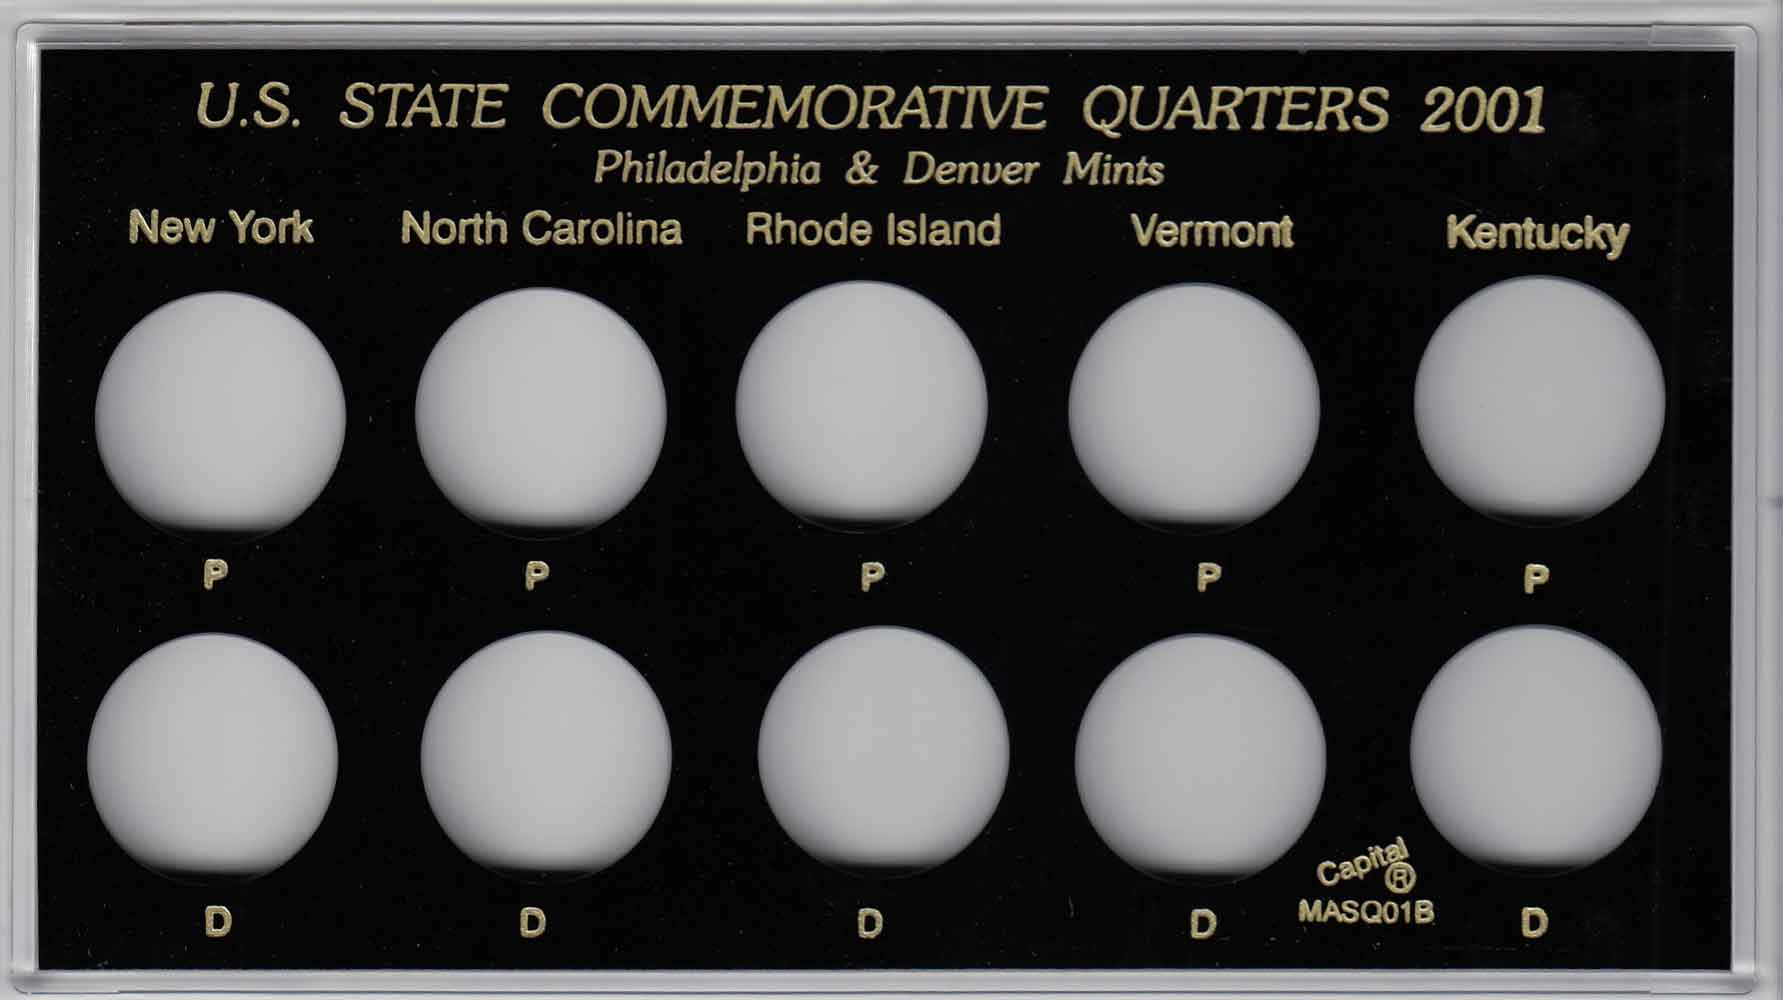 Capital Plastic Holder Snap For 7 US Proof Sets Of 5 Coins White Presentation